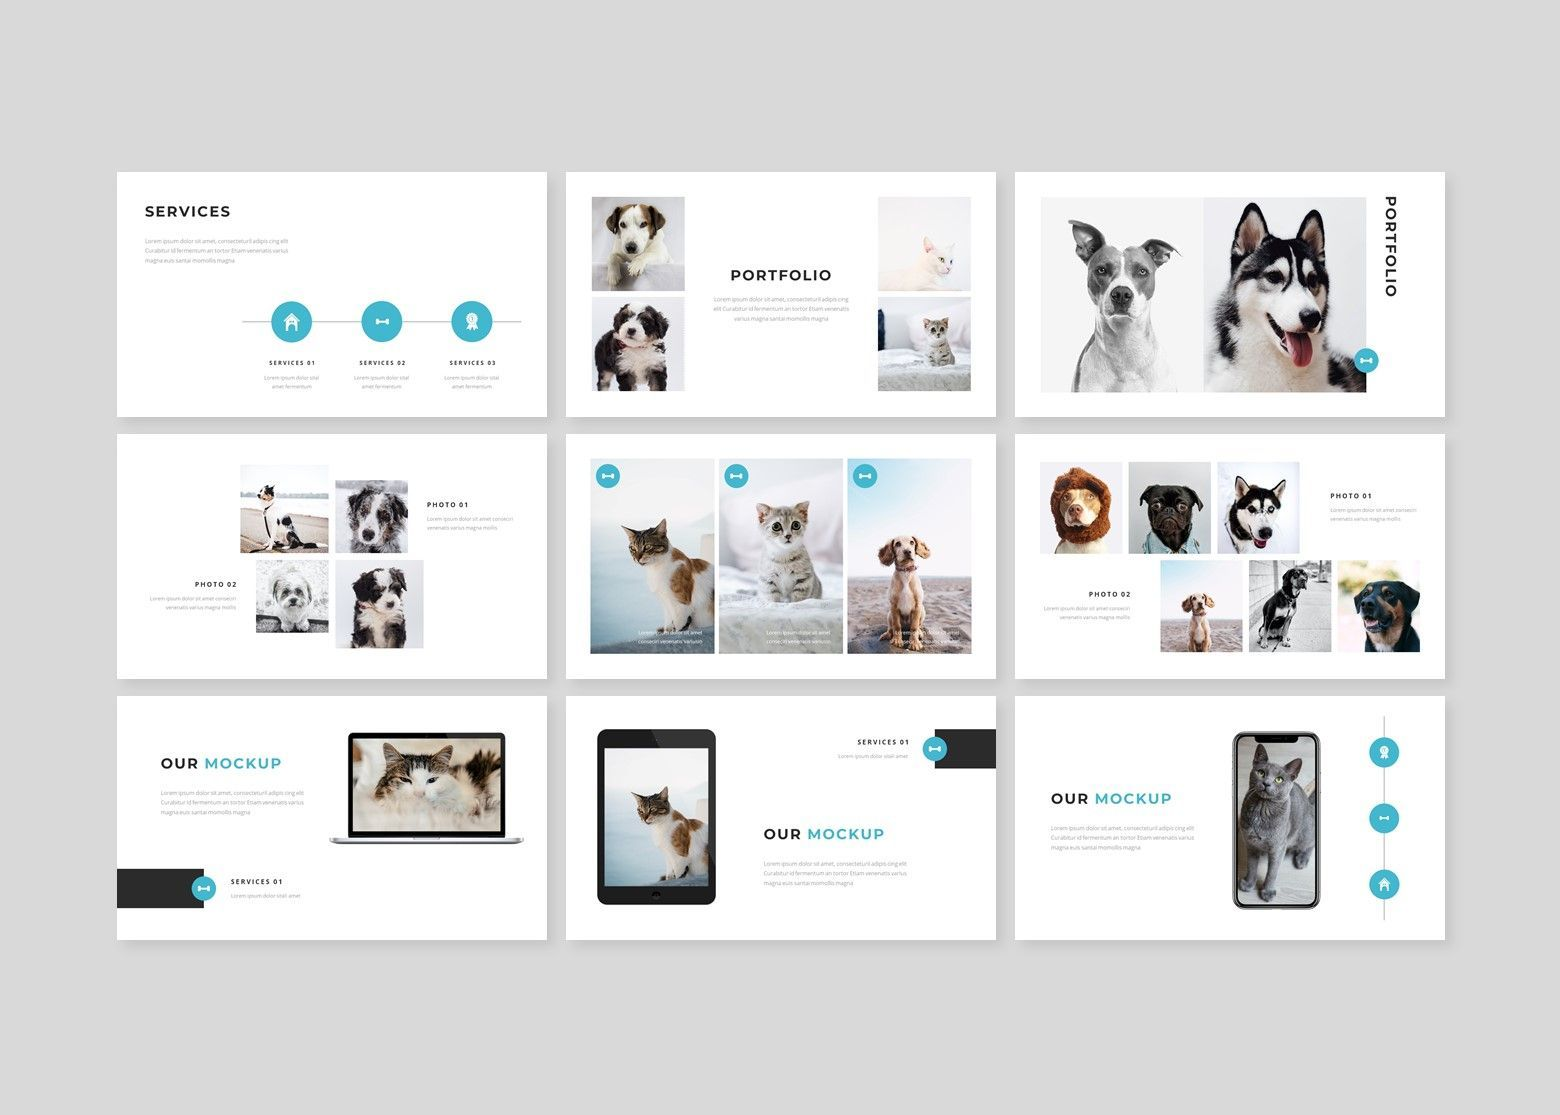 Wrog A Pet Service Google Slides, Slide 4, 08110, Business Models — PoweredTemplate.com